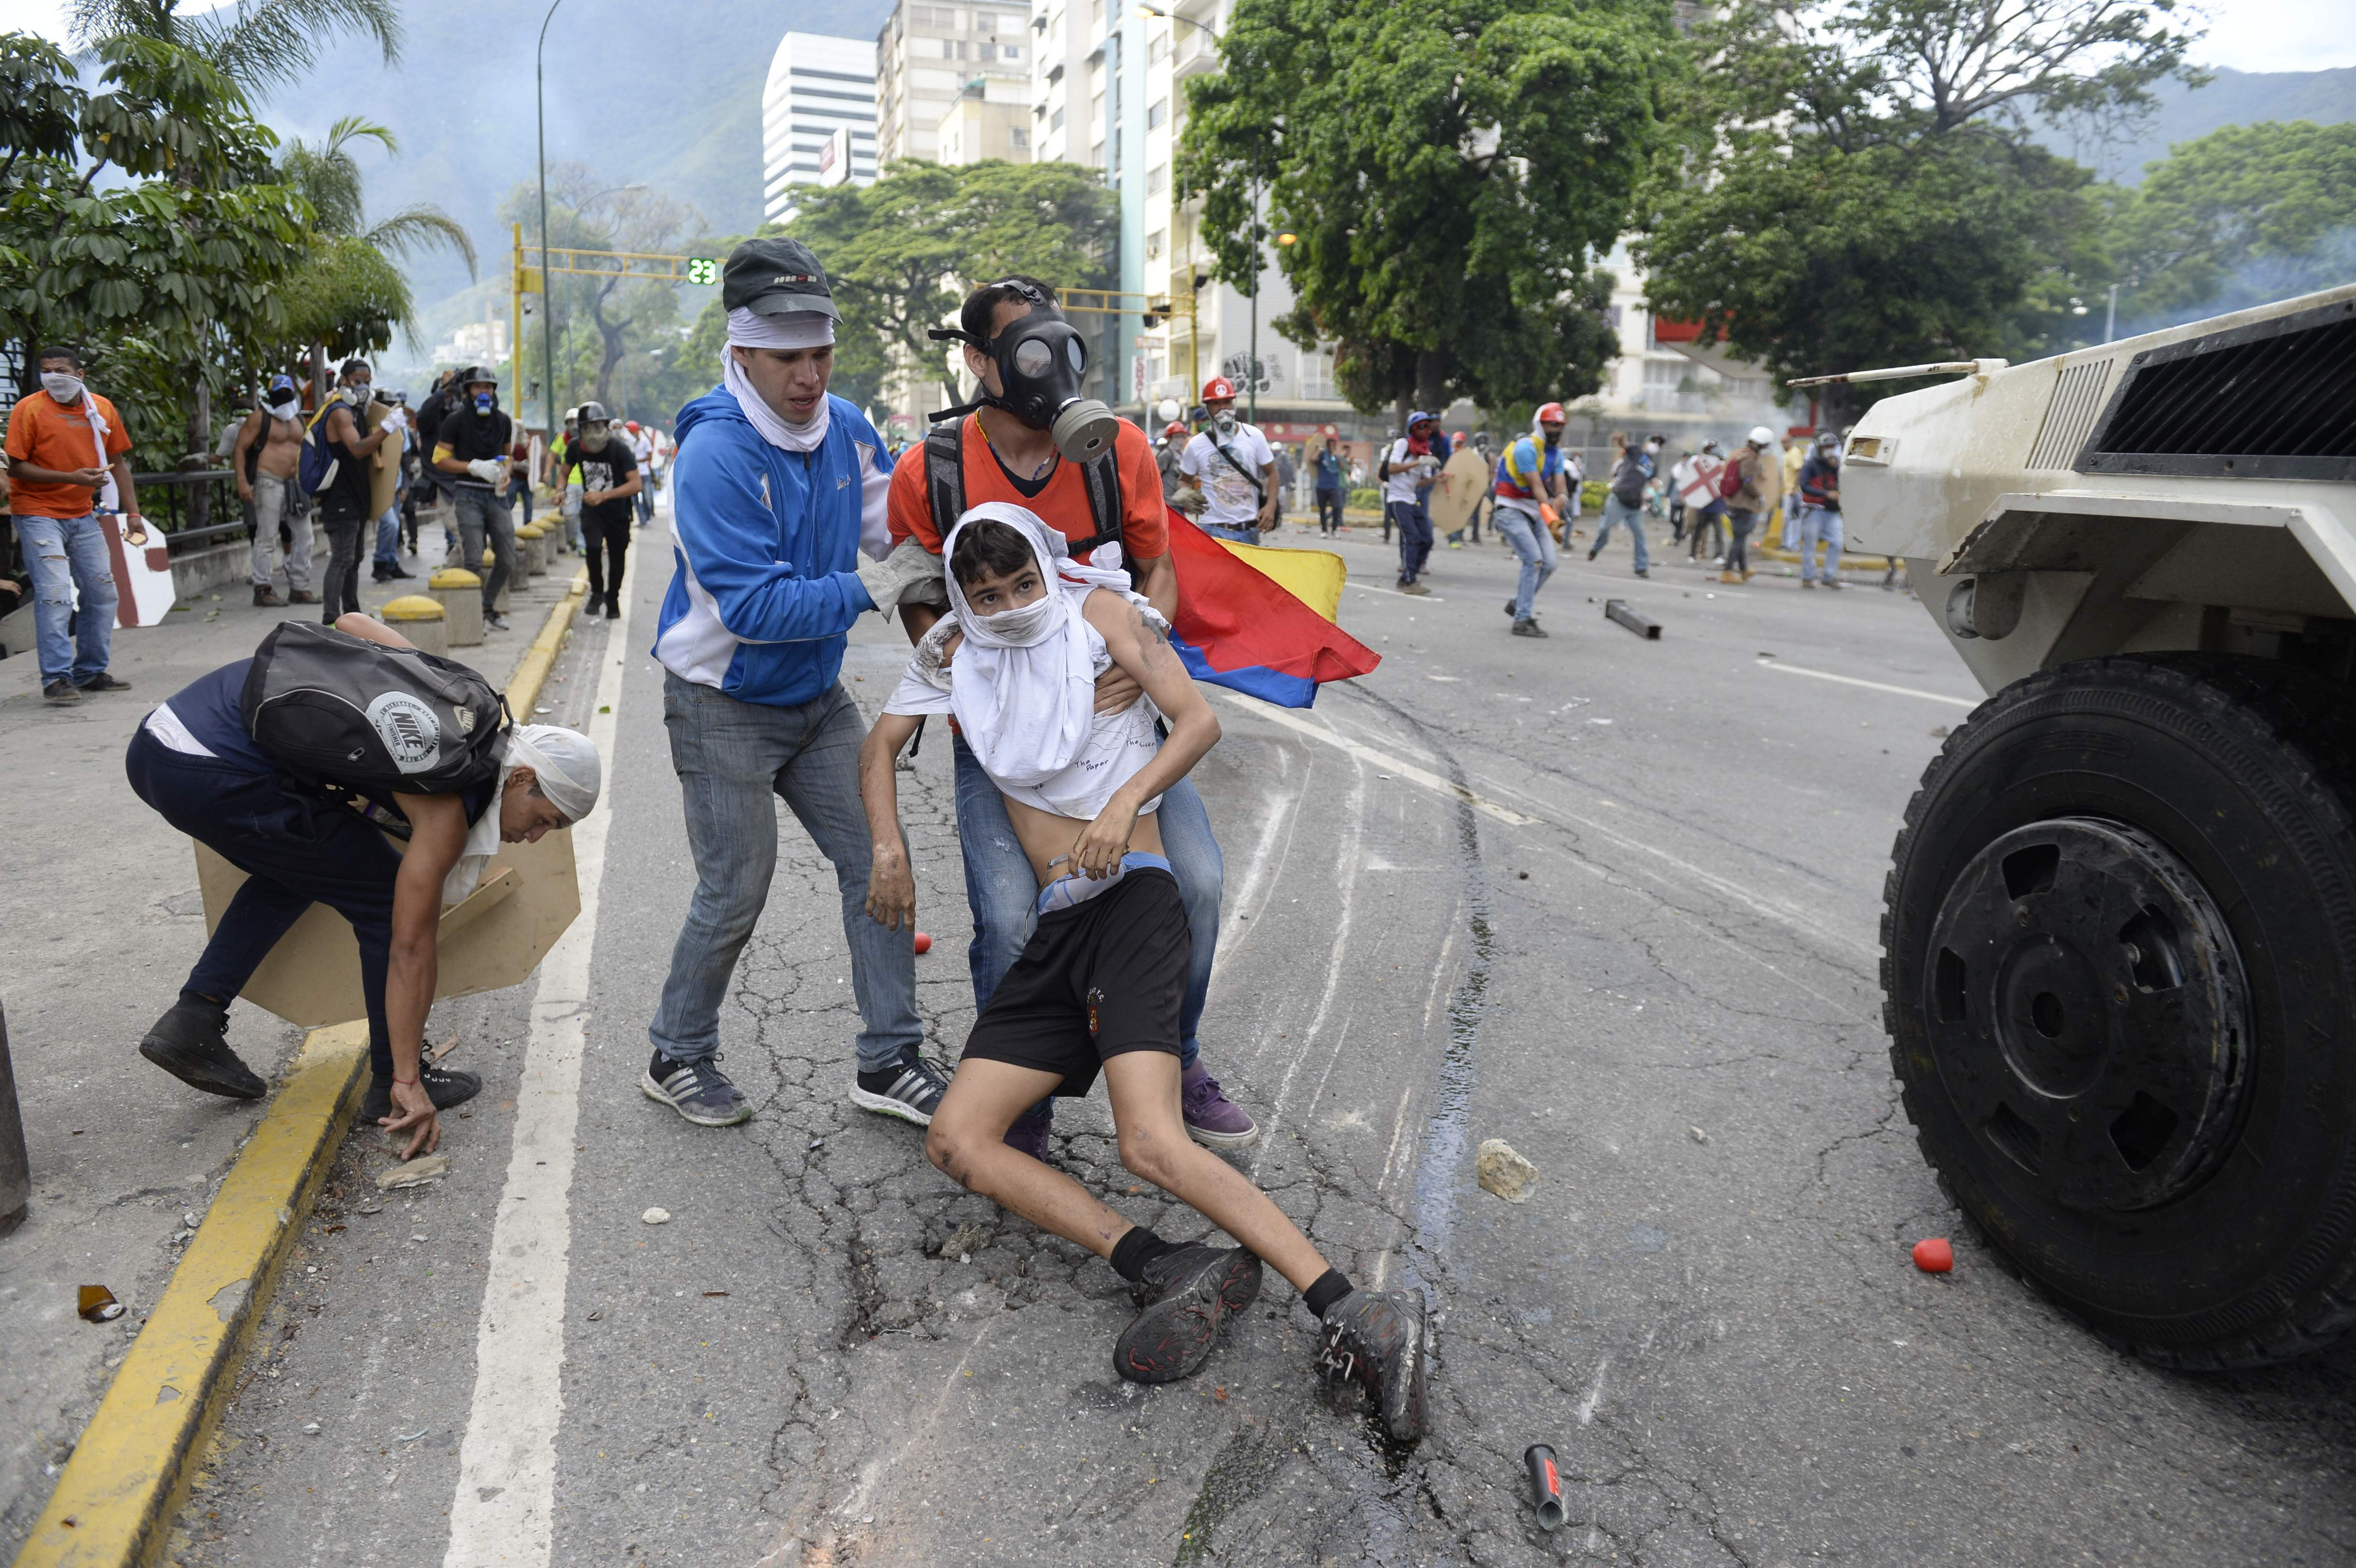 TOPSHOT - An opposition demonstrator ran over by a National Guard control vehicle is dragged away by a fellow demonstrator during a protest against Venezuelan President Nicolas Maduro, in Caracas on May 3, 2017. Venezuela's angry opposition rallied Wednesday vowing huge street protests against President Nicolas Maduro's plan to rewrite the constitution and accusing him of dodging elections to cling to power despite deadly unrest. / AFP PHOTO / FEDERICO PARRA / GRAPHIC CONTENT / TT / kod 444